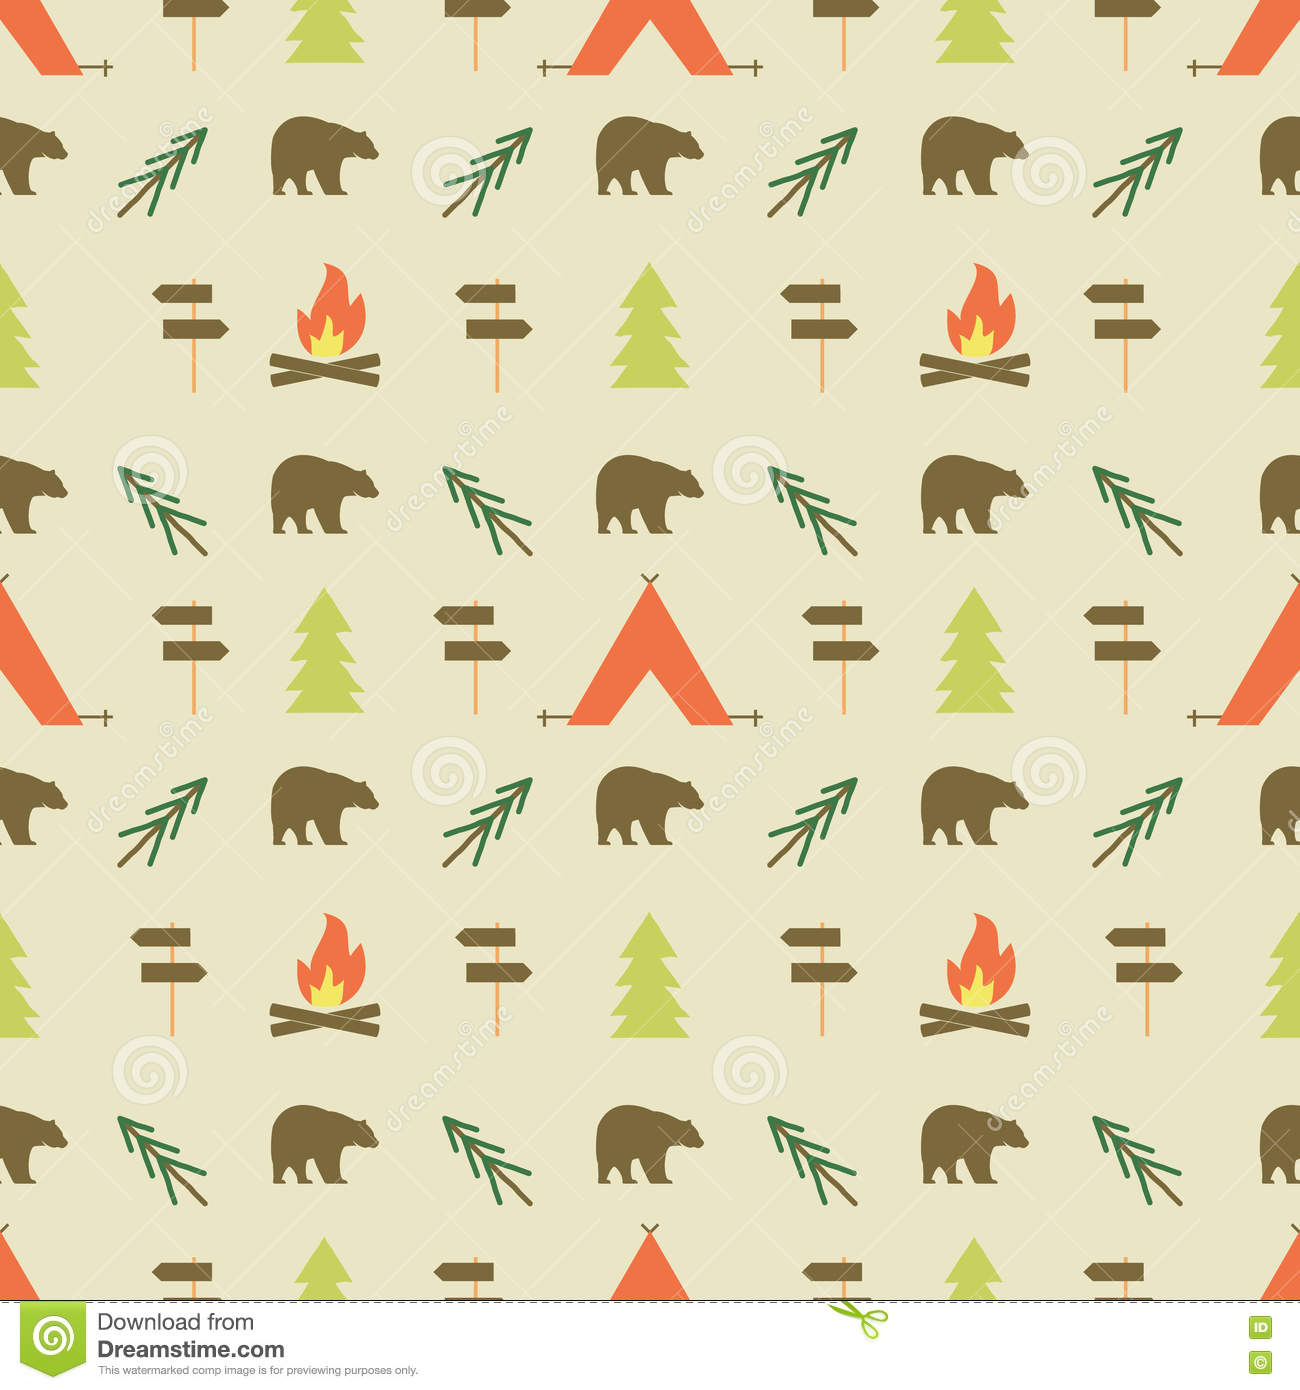 Camping Elements Pattern Camping Seamless Wallpaper Design Stock Vector Illustration Of Equipment Animal 73760815